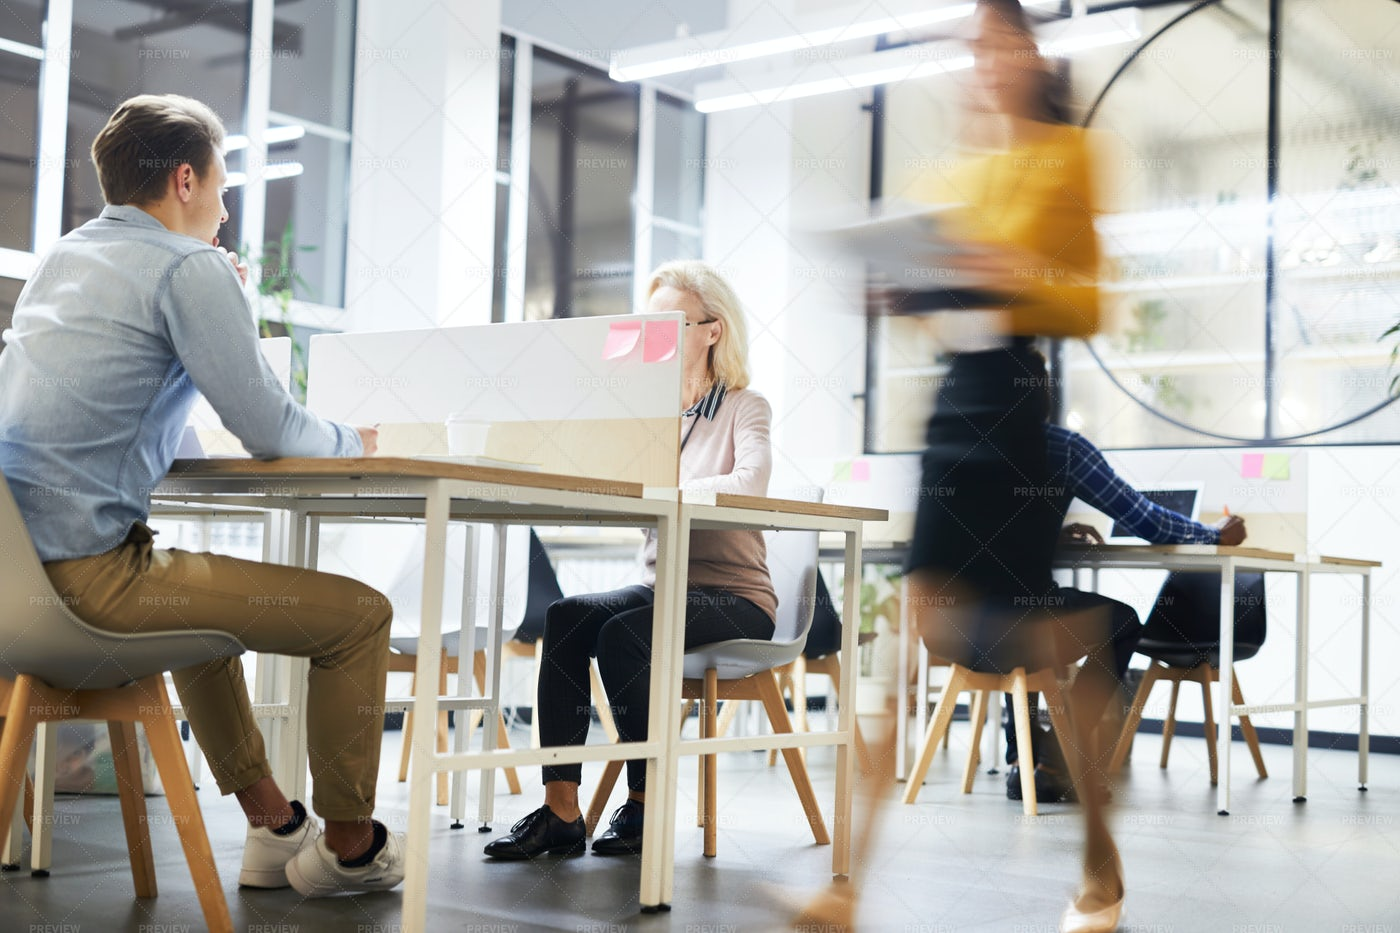 Work Lifestyle In Modern Office: Stock Photos